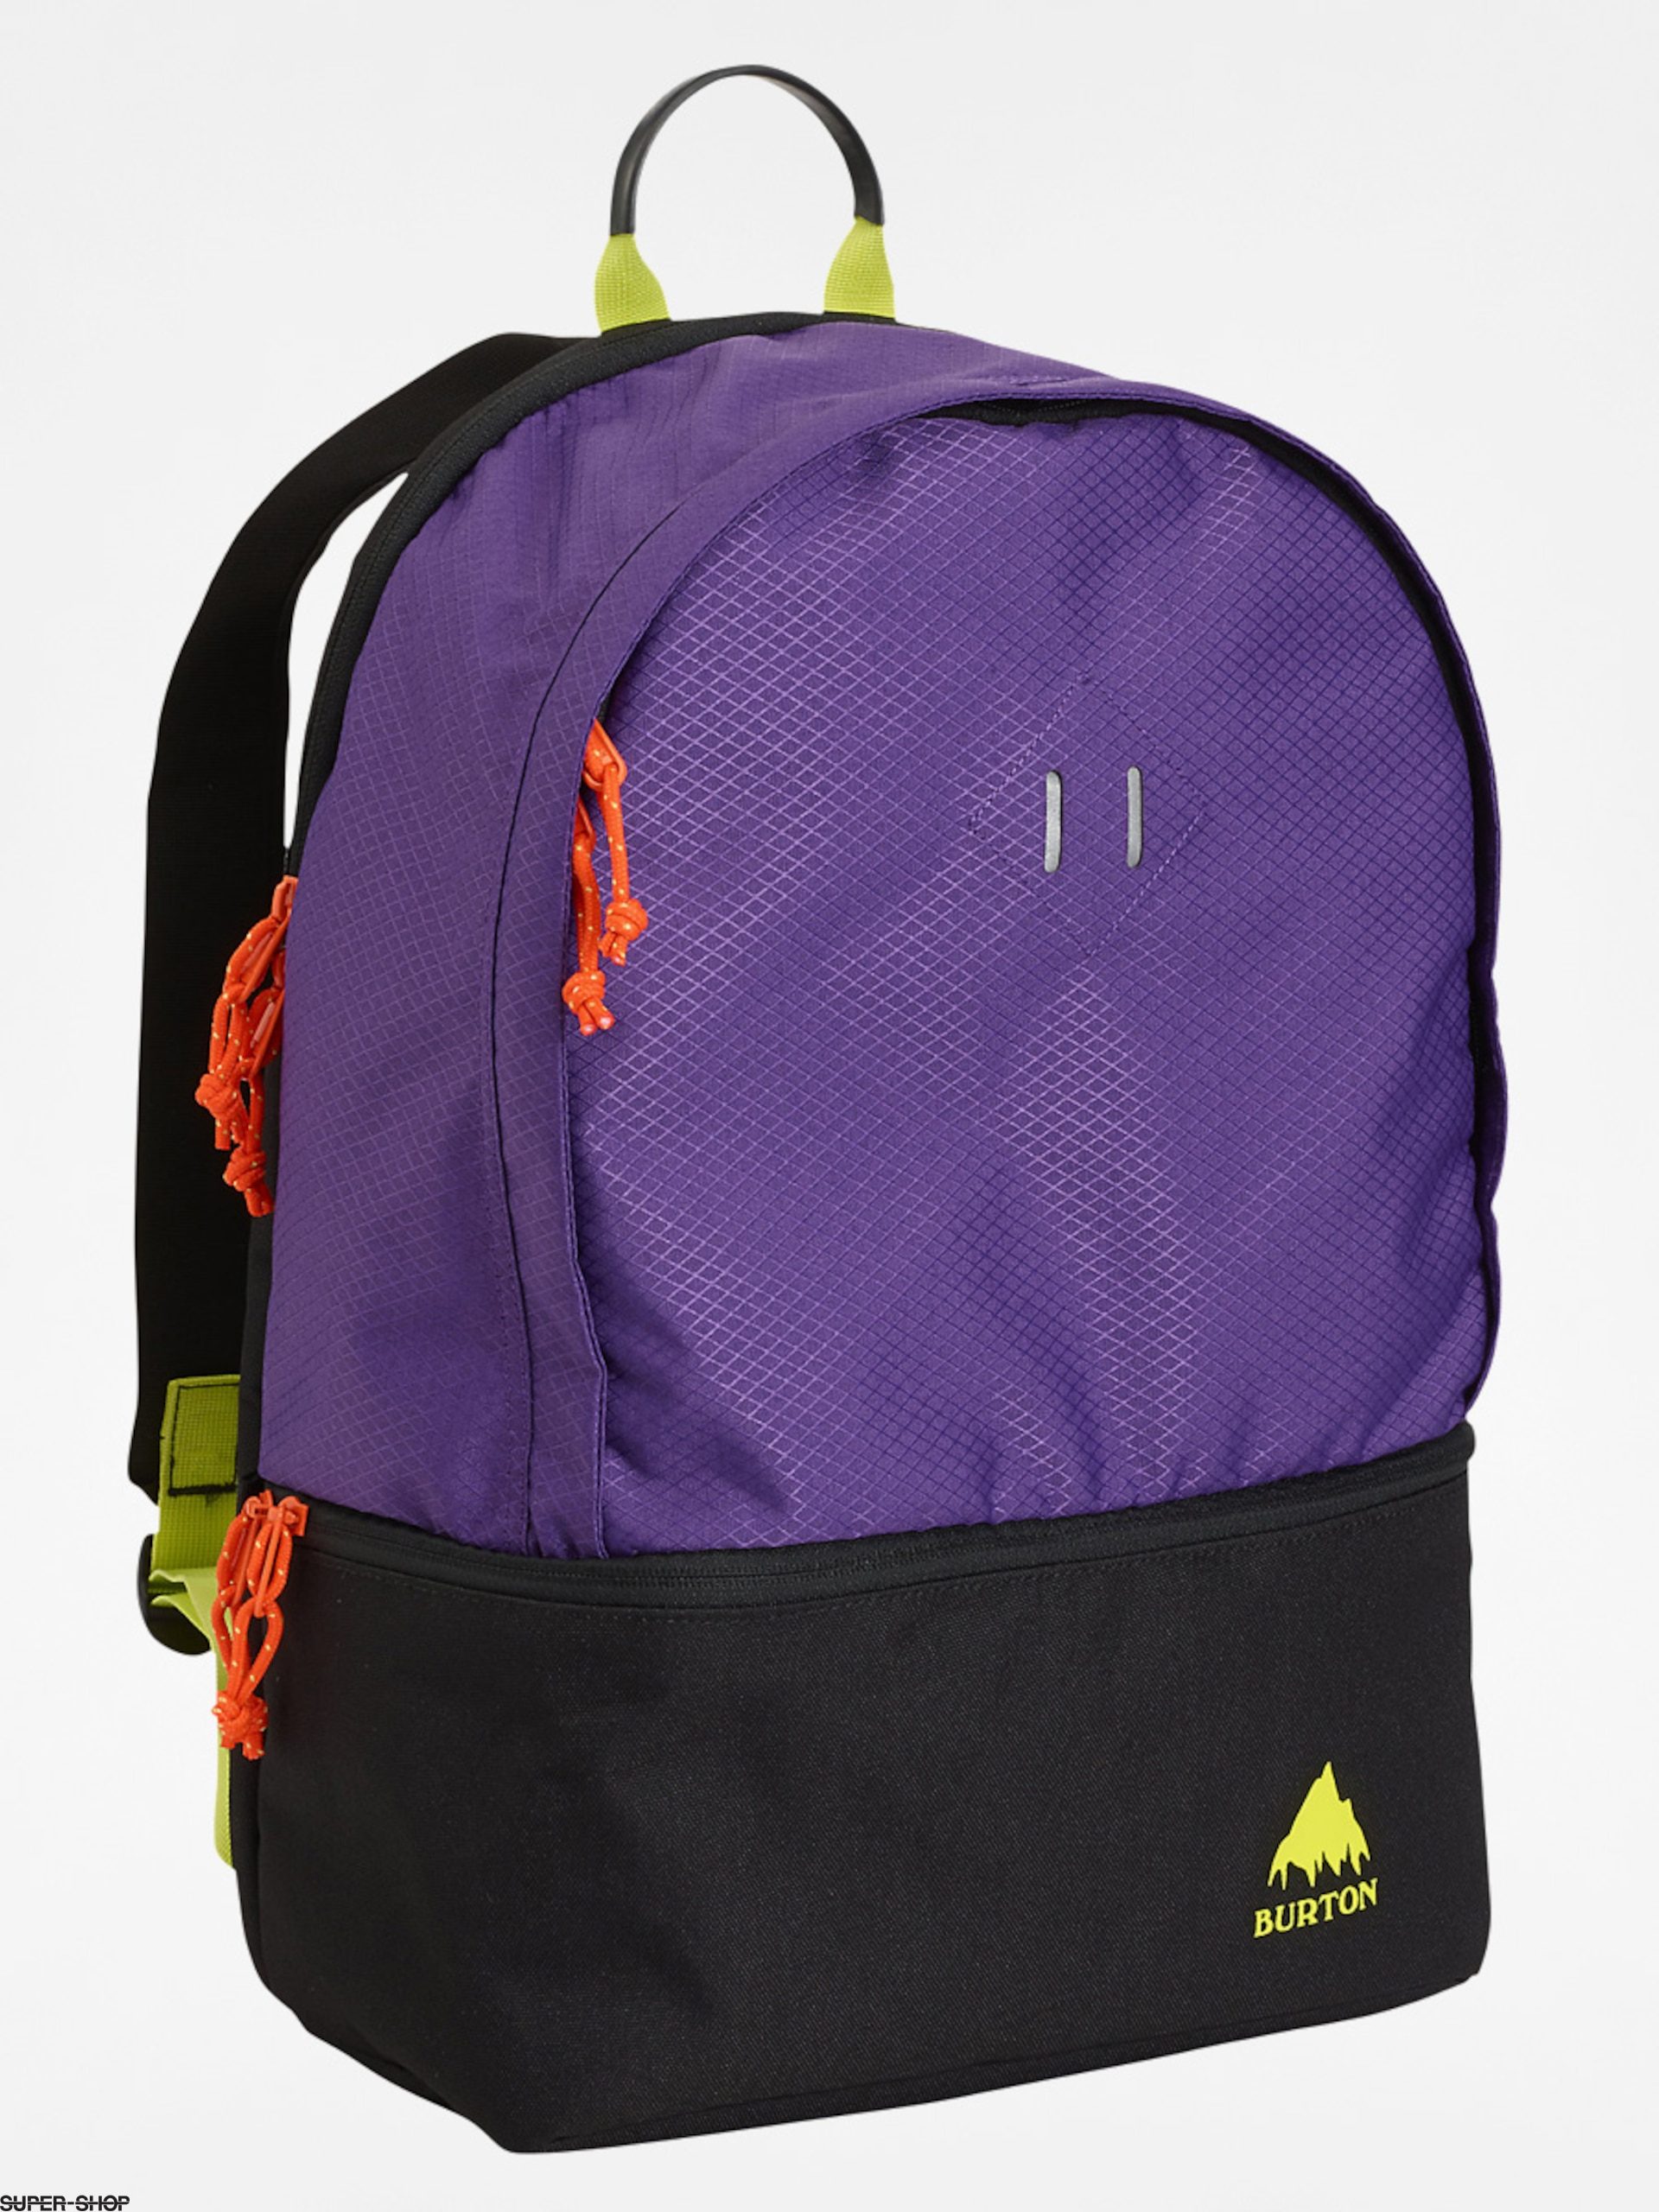 Burton Backpack Snake Mountain (grape crush)